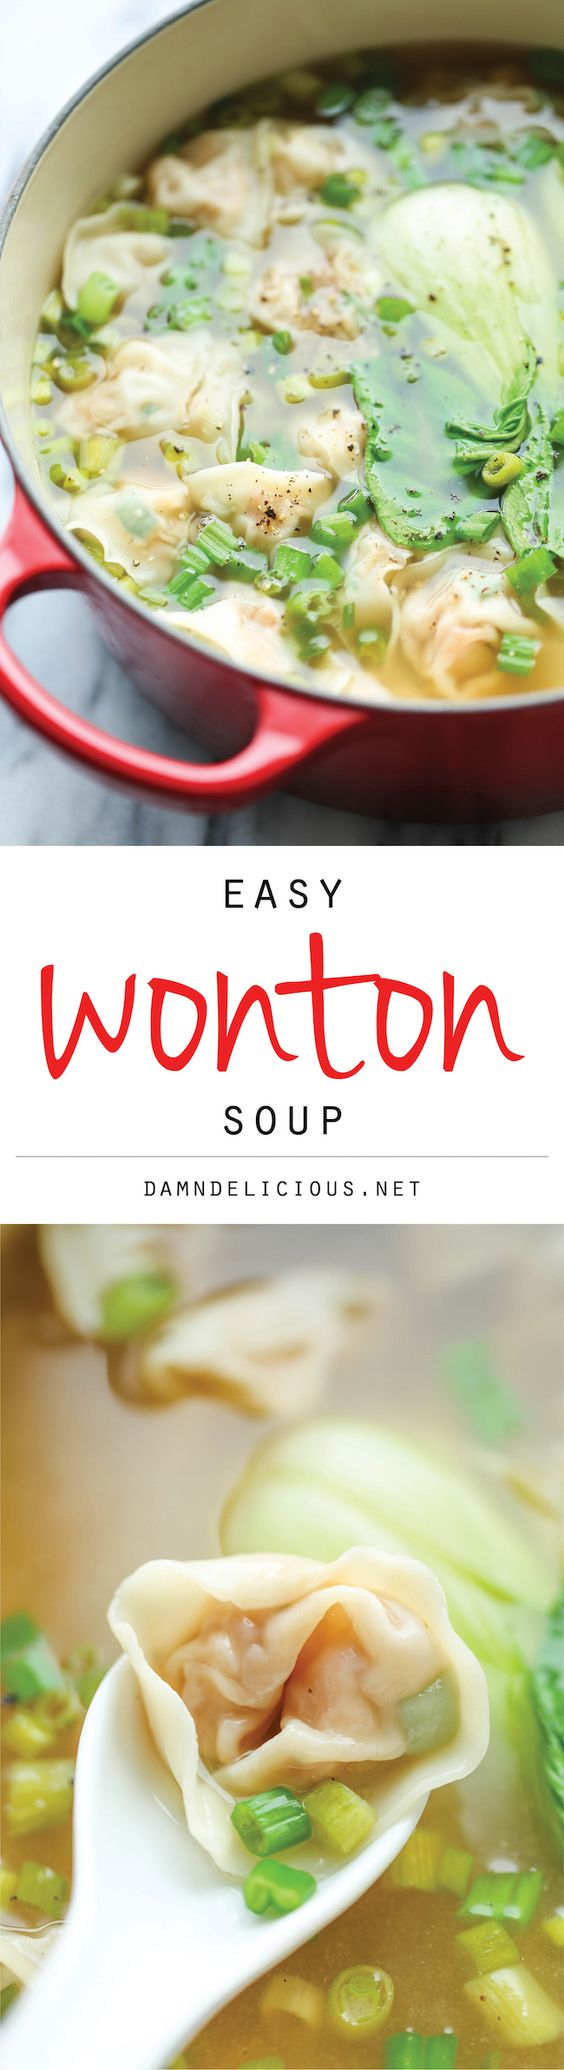 Easy Wonton Soup Recipe | Damn Delicious - The BEST Homemade Soups Recipes - Easy, Quick and Yummy Lunch and Dinner Family Favorites Meals Ideas